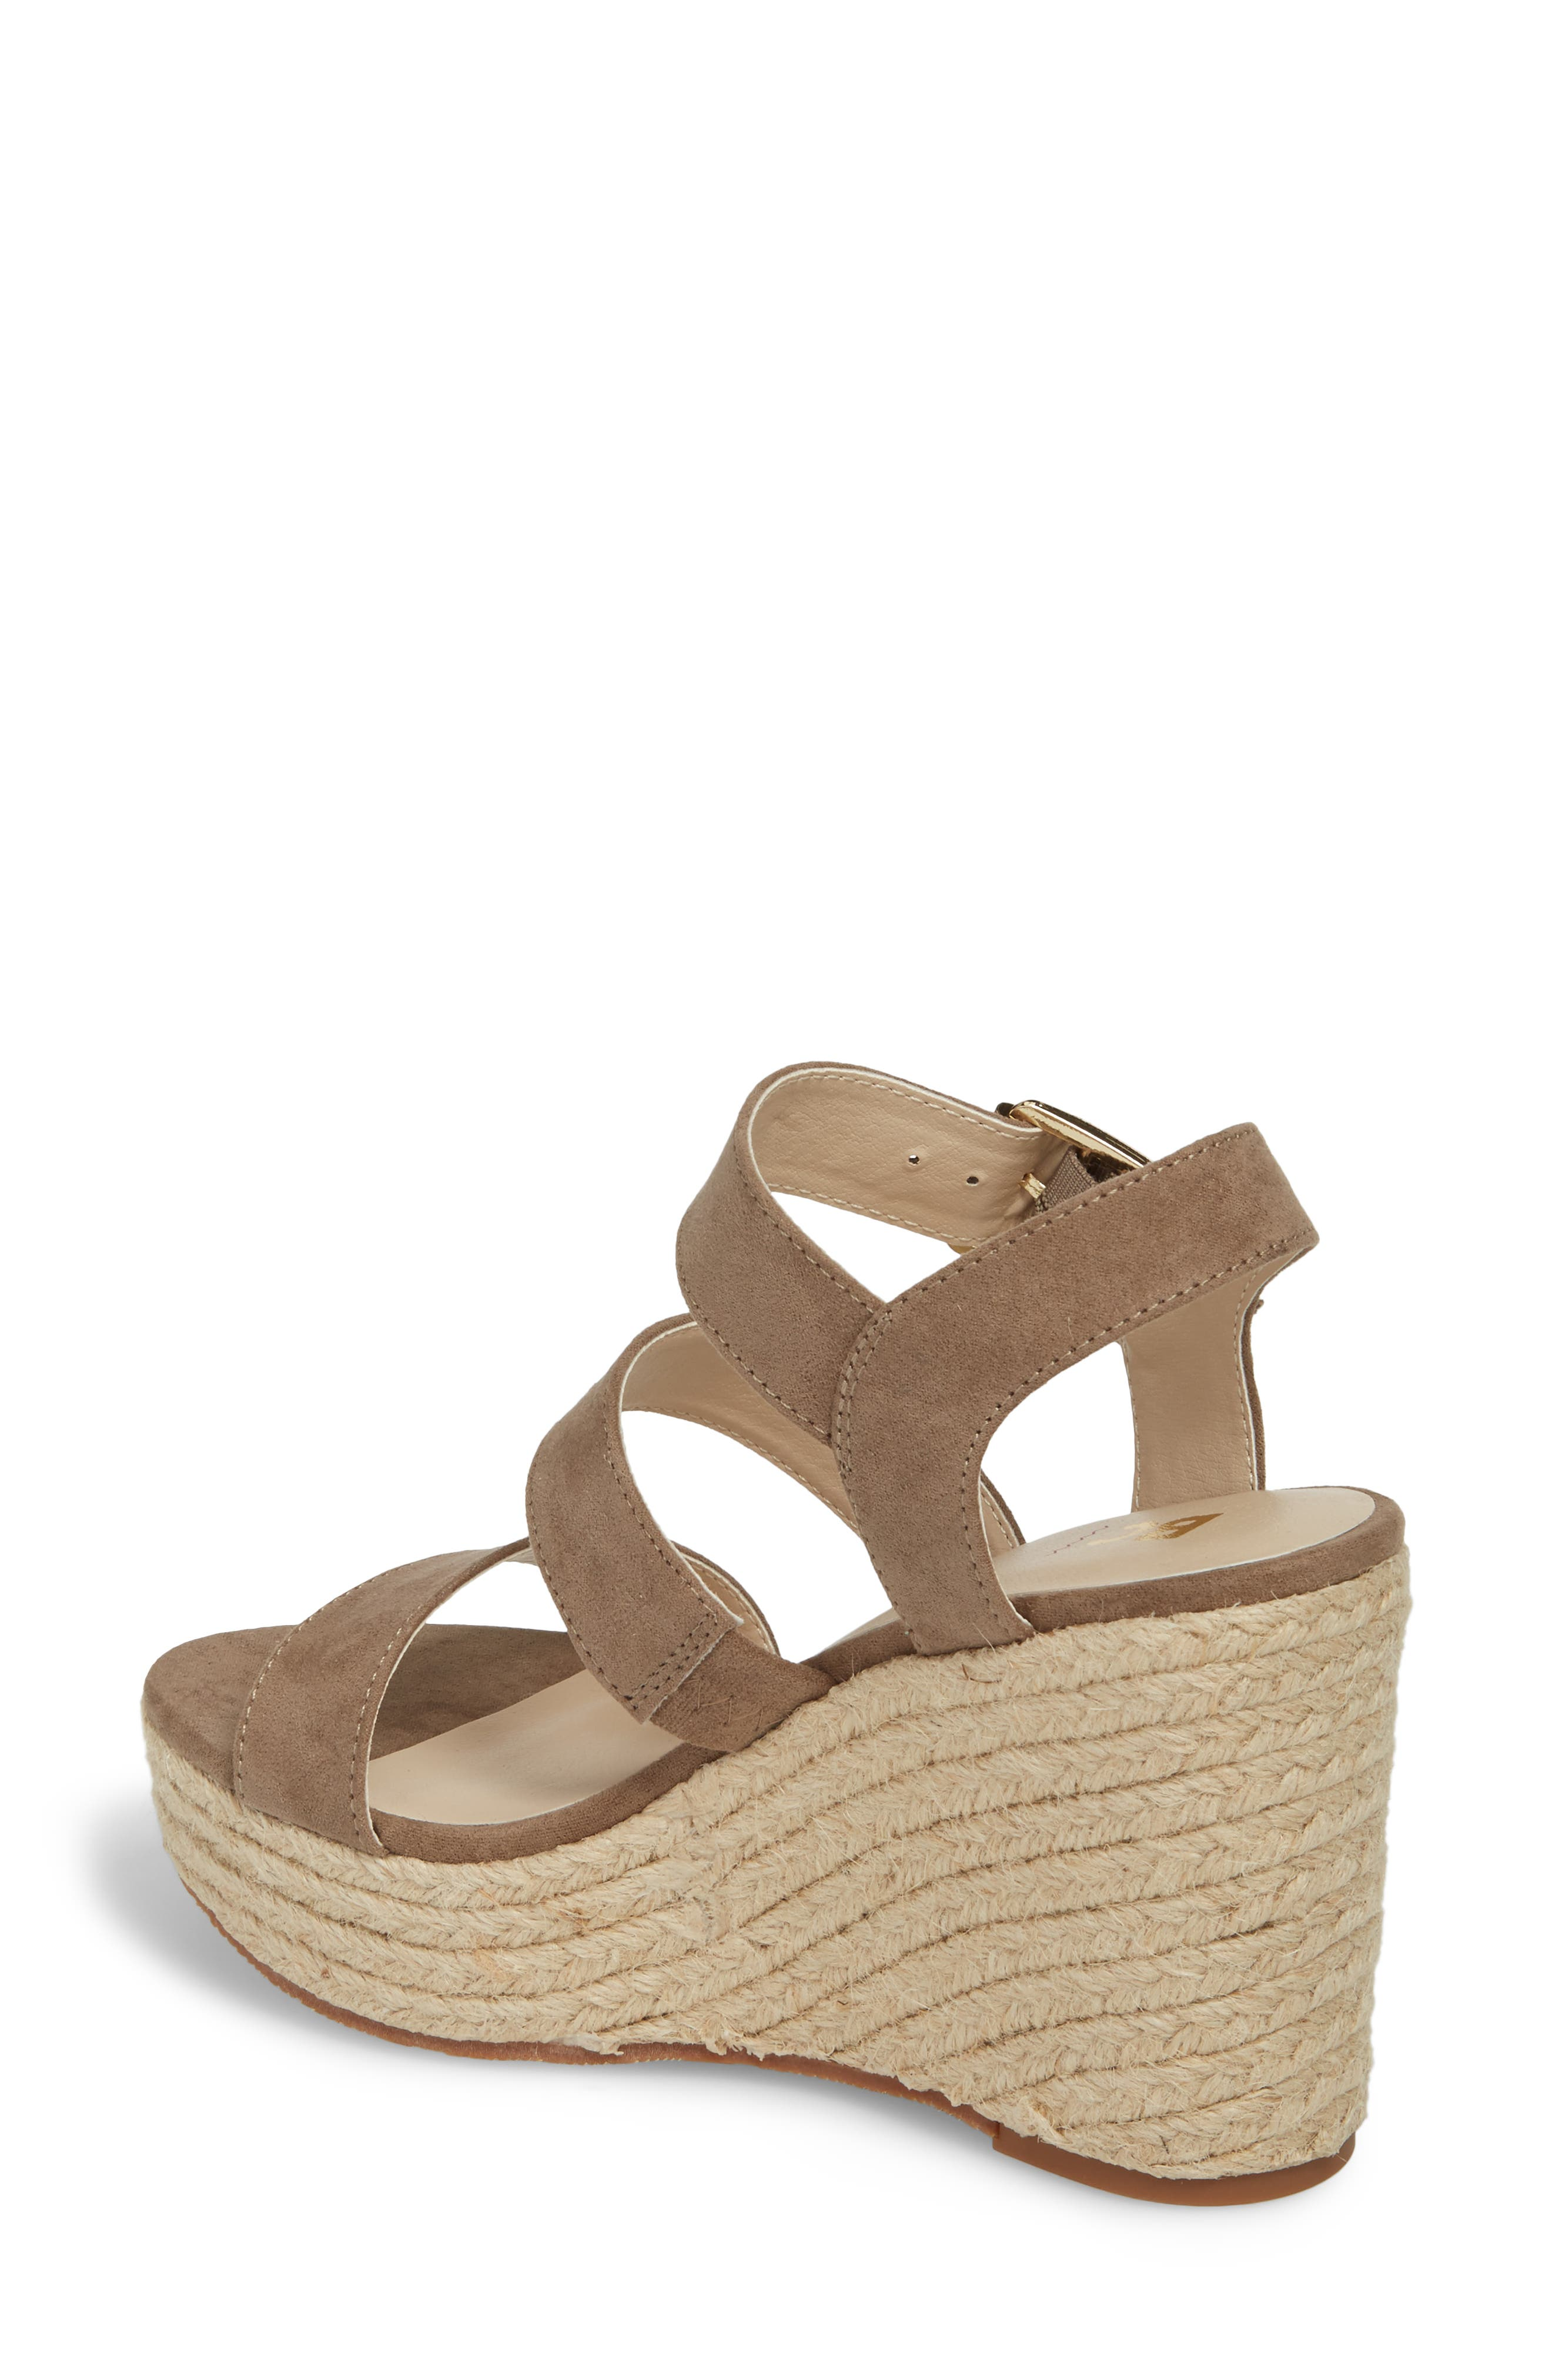 Snack Bar Espadrille Wedge Sandal,                             Alternate thumbnail 2, color,                             Taupe Suede